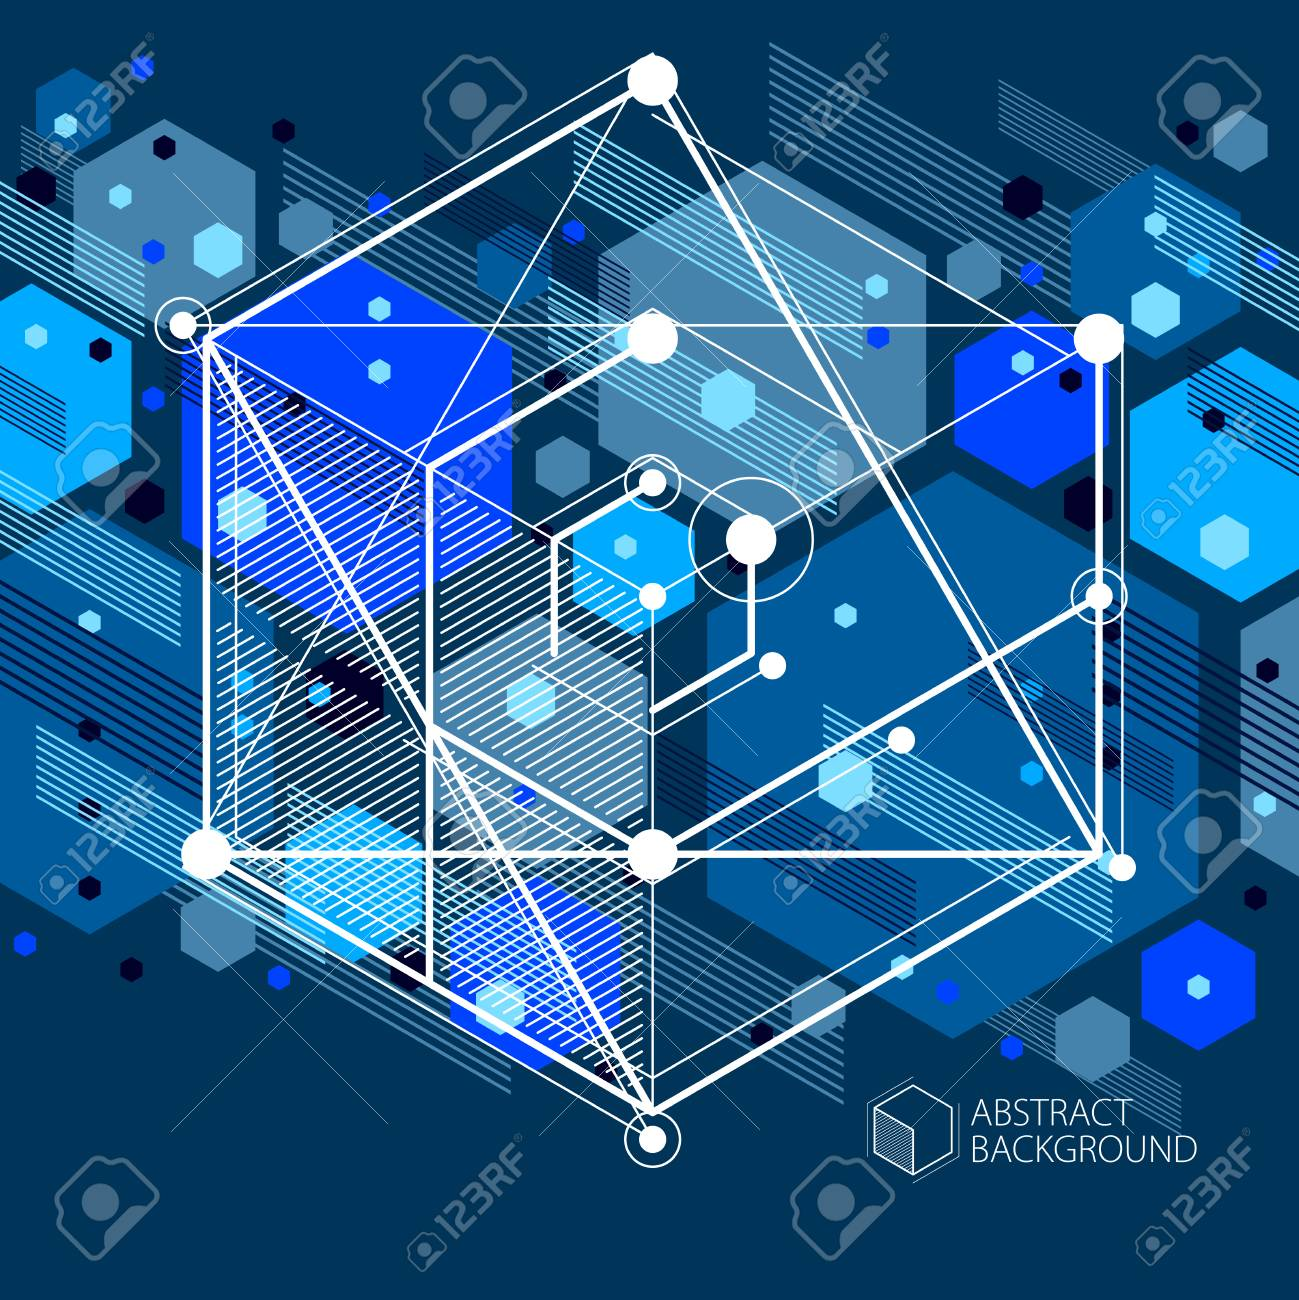 Engineering Technology Vector Dark Blue Wallpaper Made With 3d